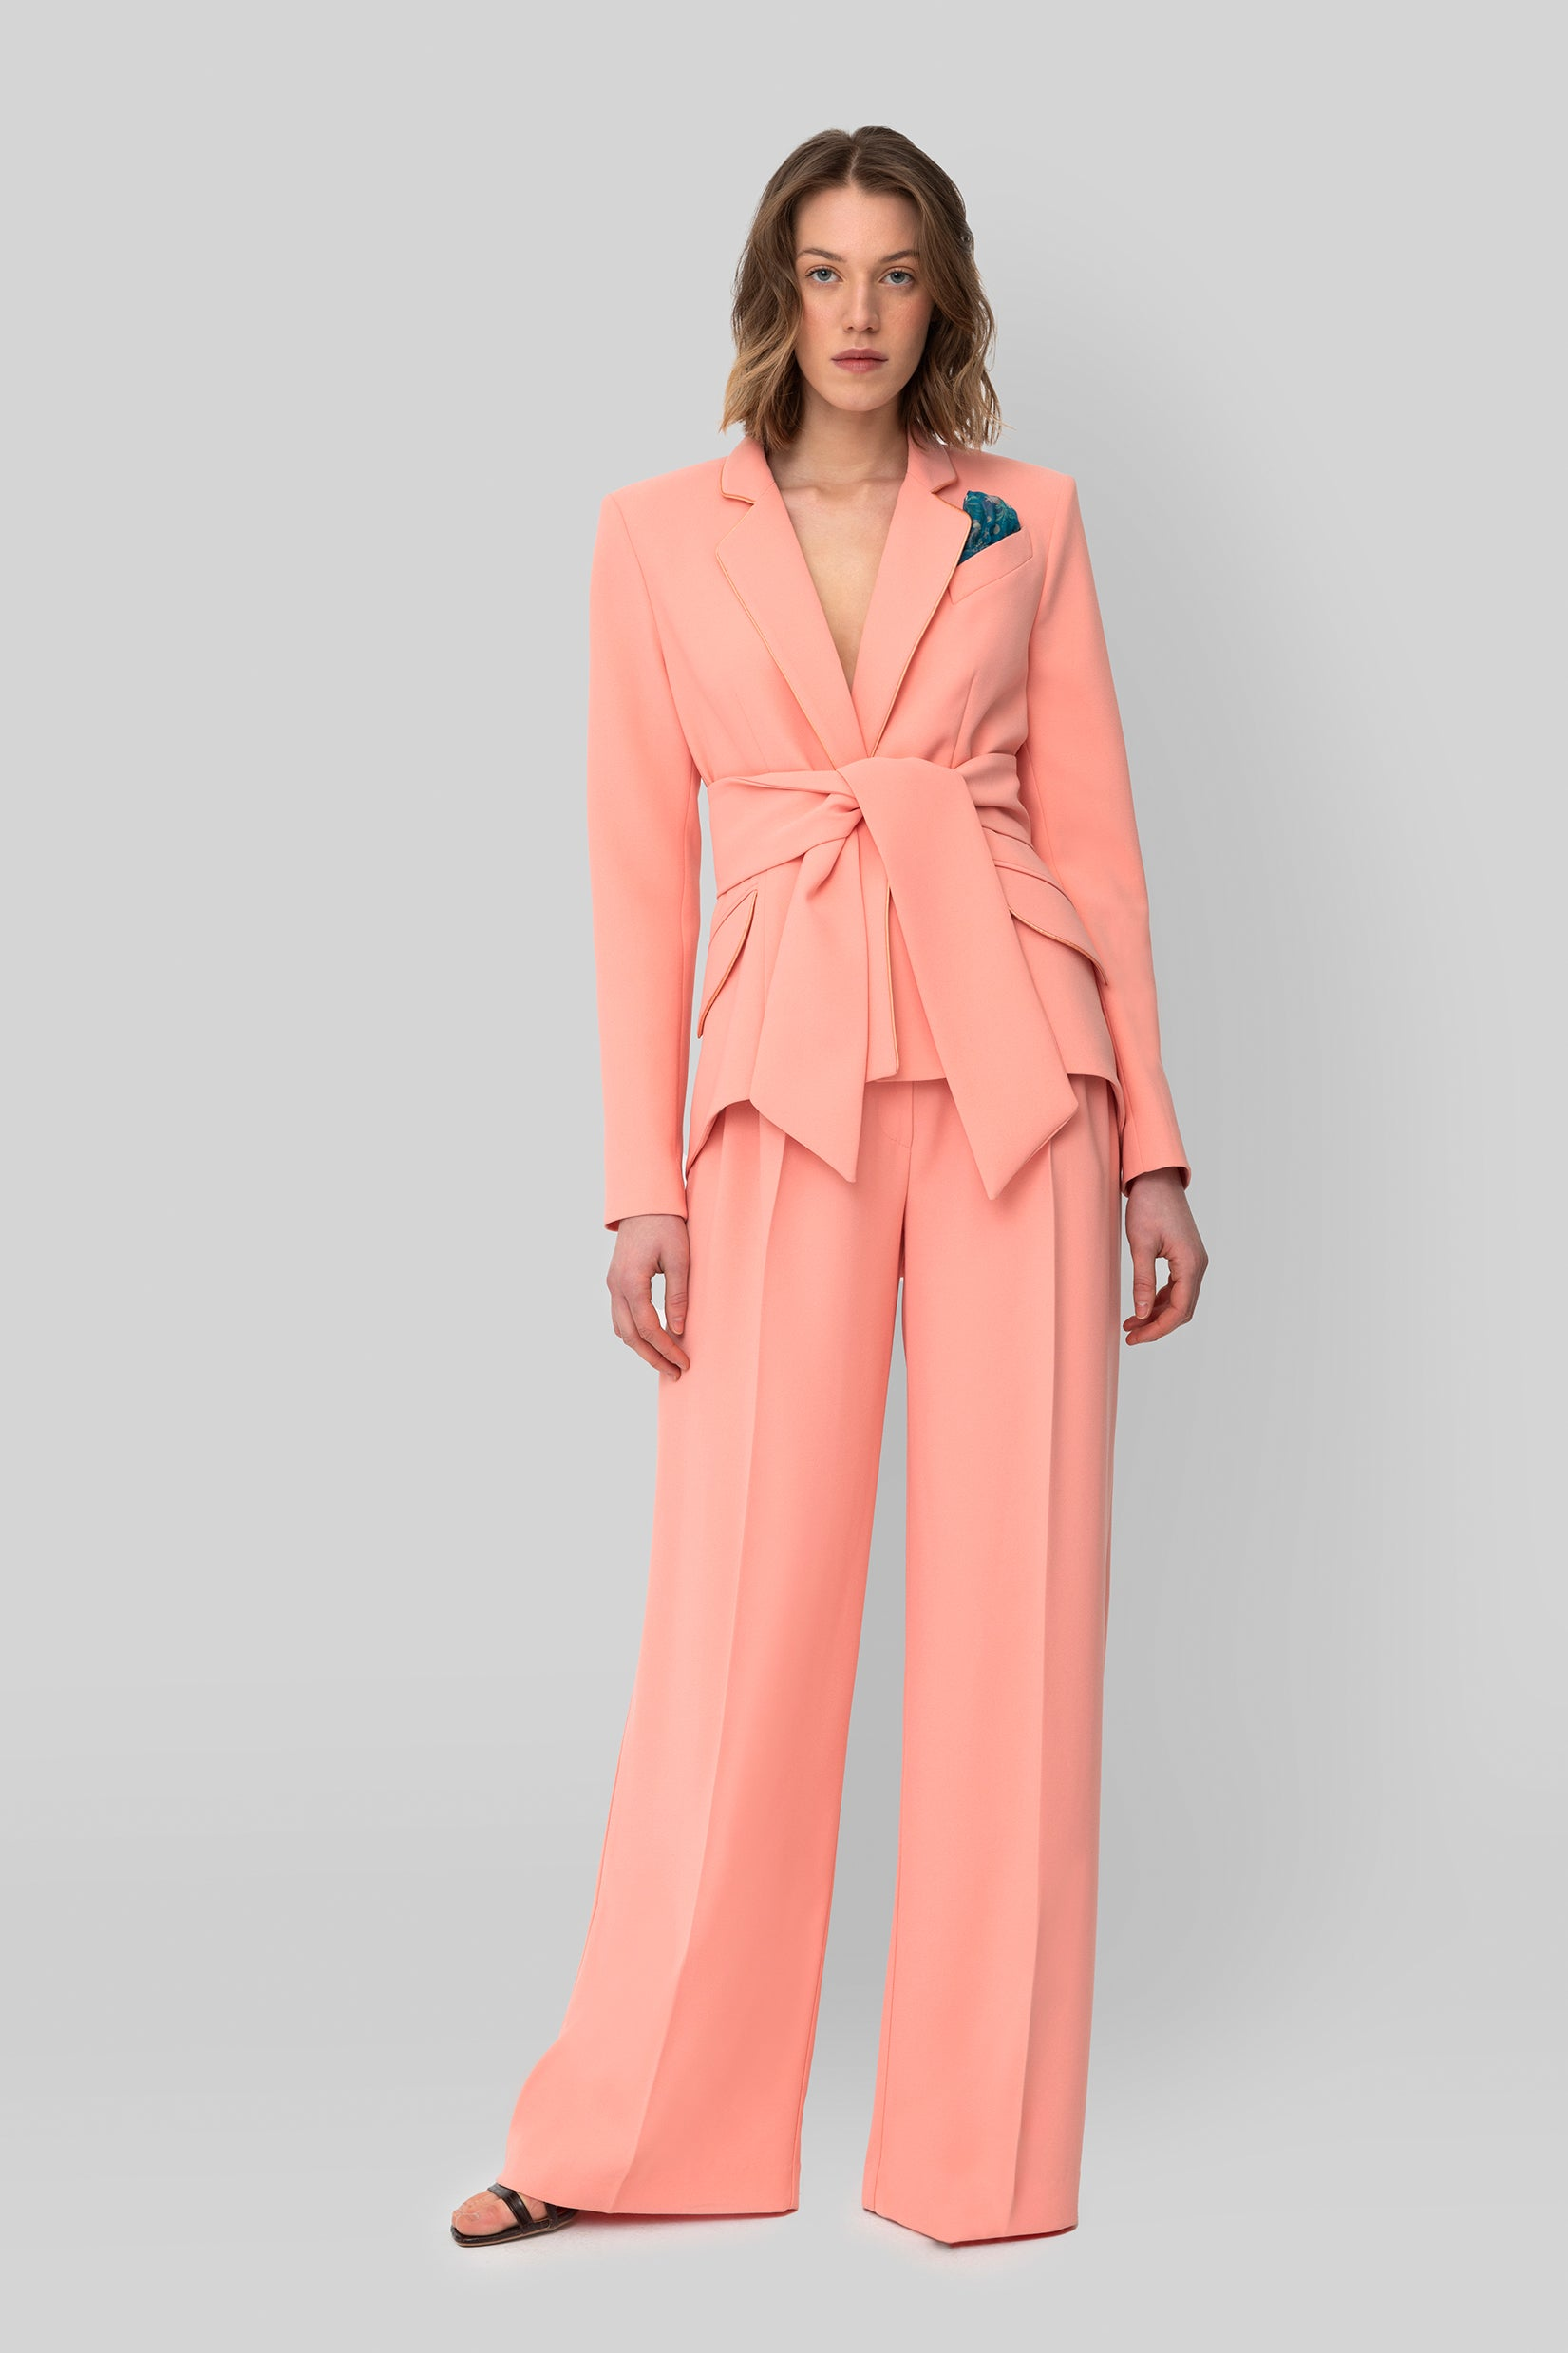 The Salmon Crepe Girlfriend Blazer